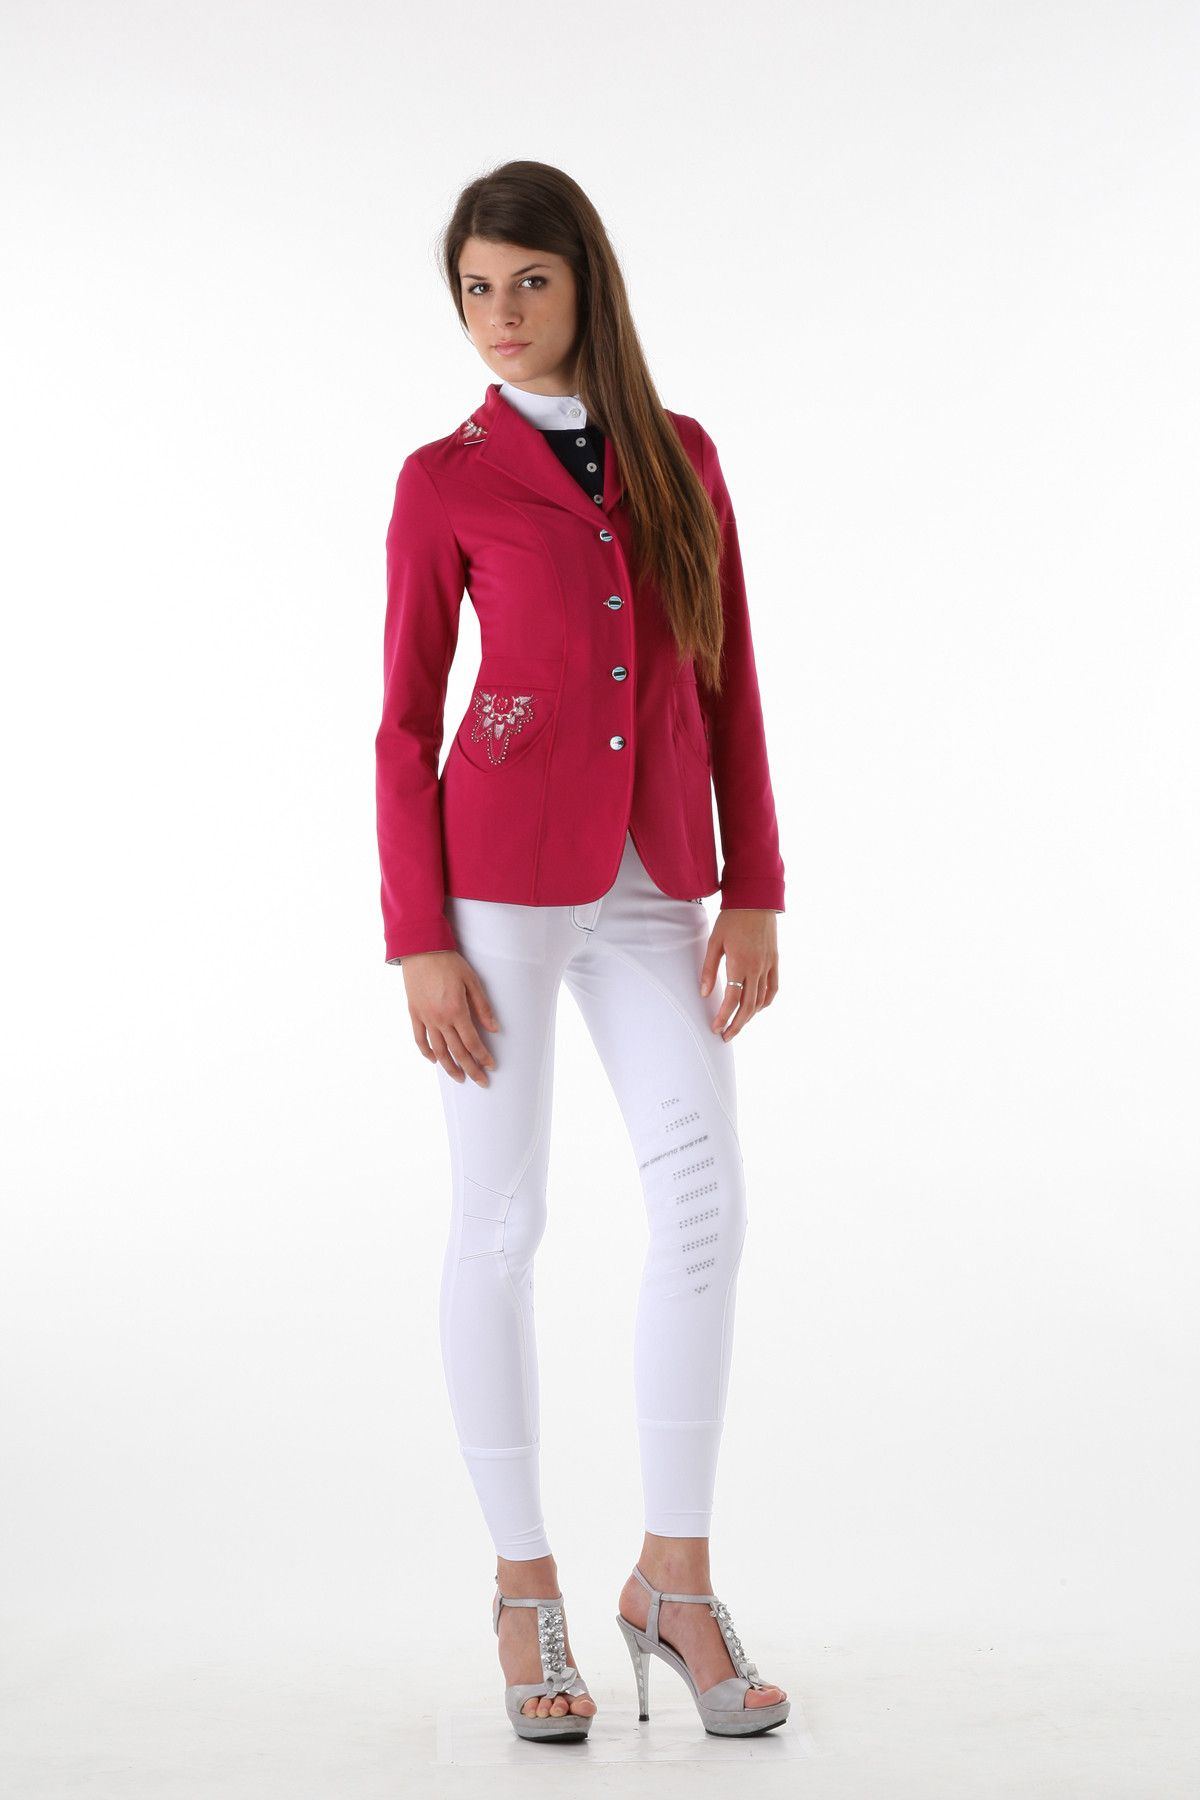 Linet by Animo Italia priced at £504 - Follow the Link http://www.justriding.com and talk to us about discounts.